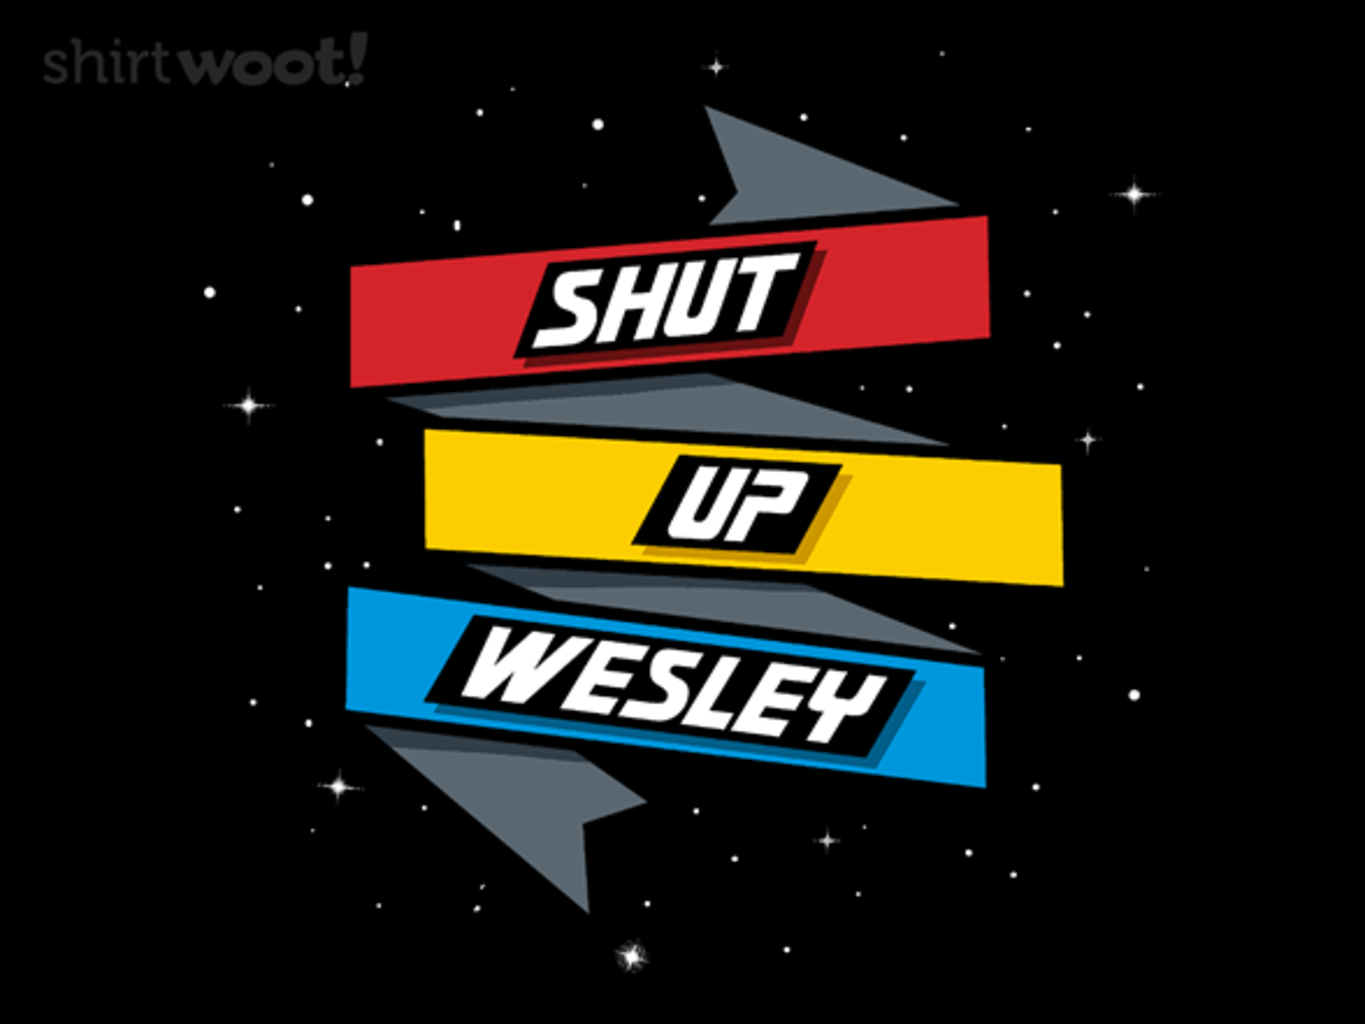 Woot!: Shut Up Wesley